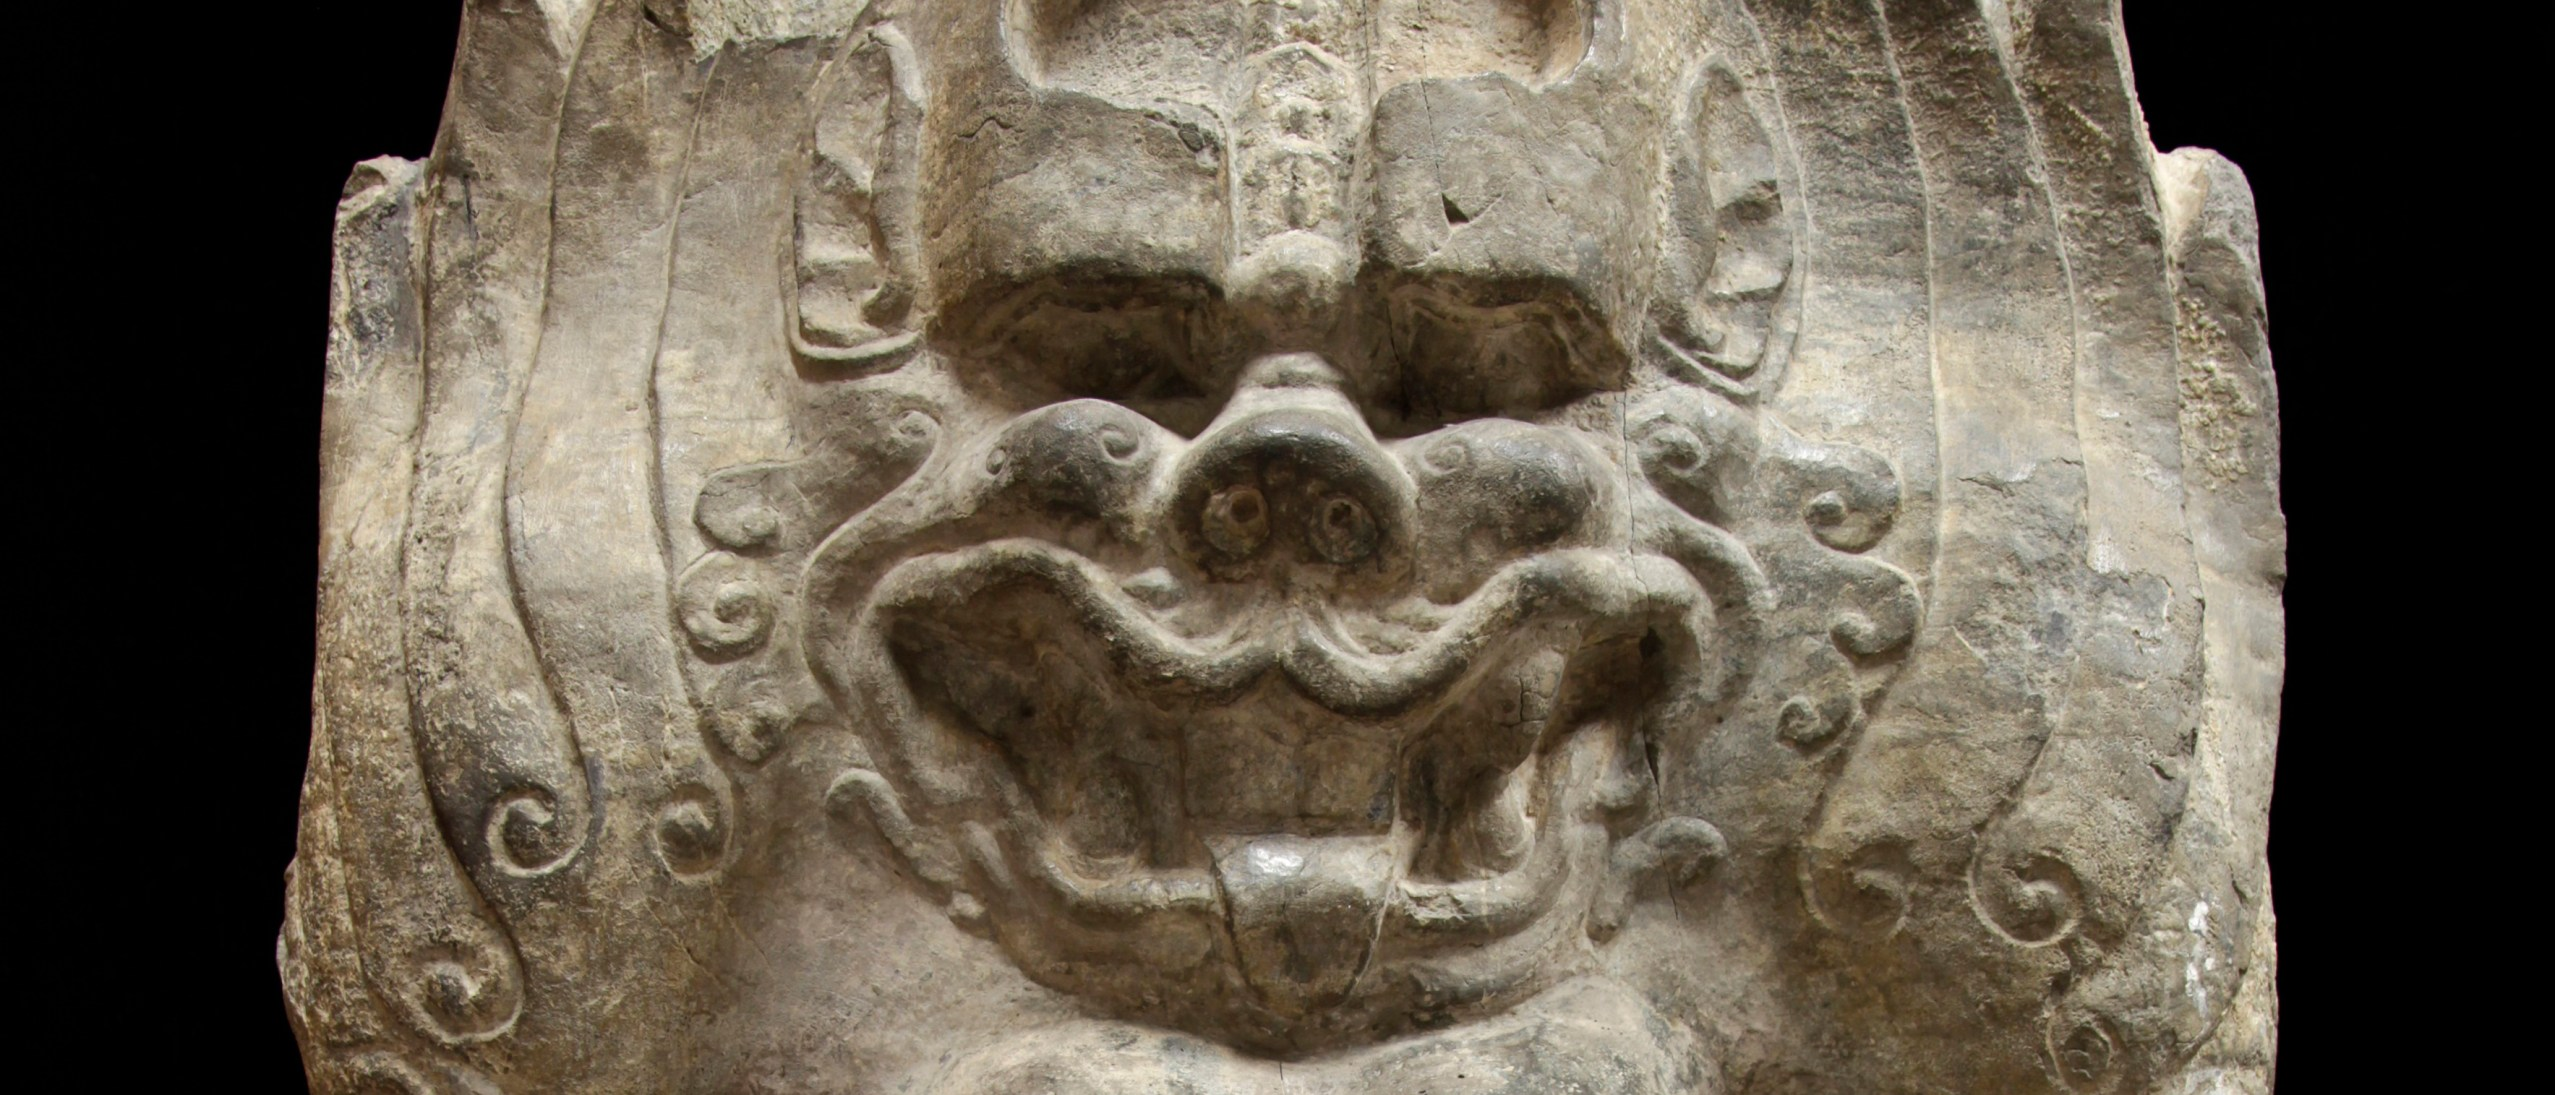 Snarling face of a stone carved monster